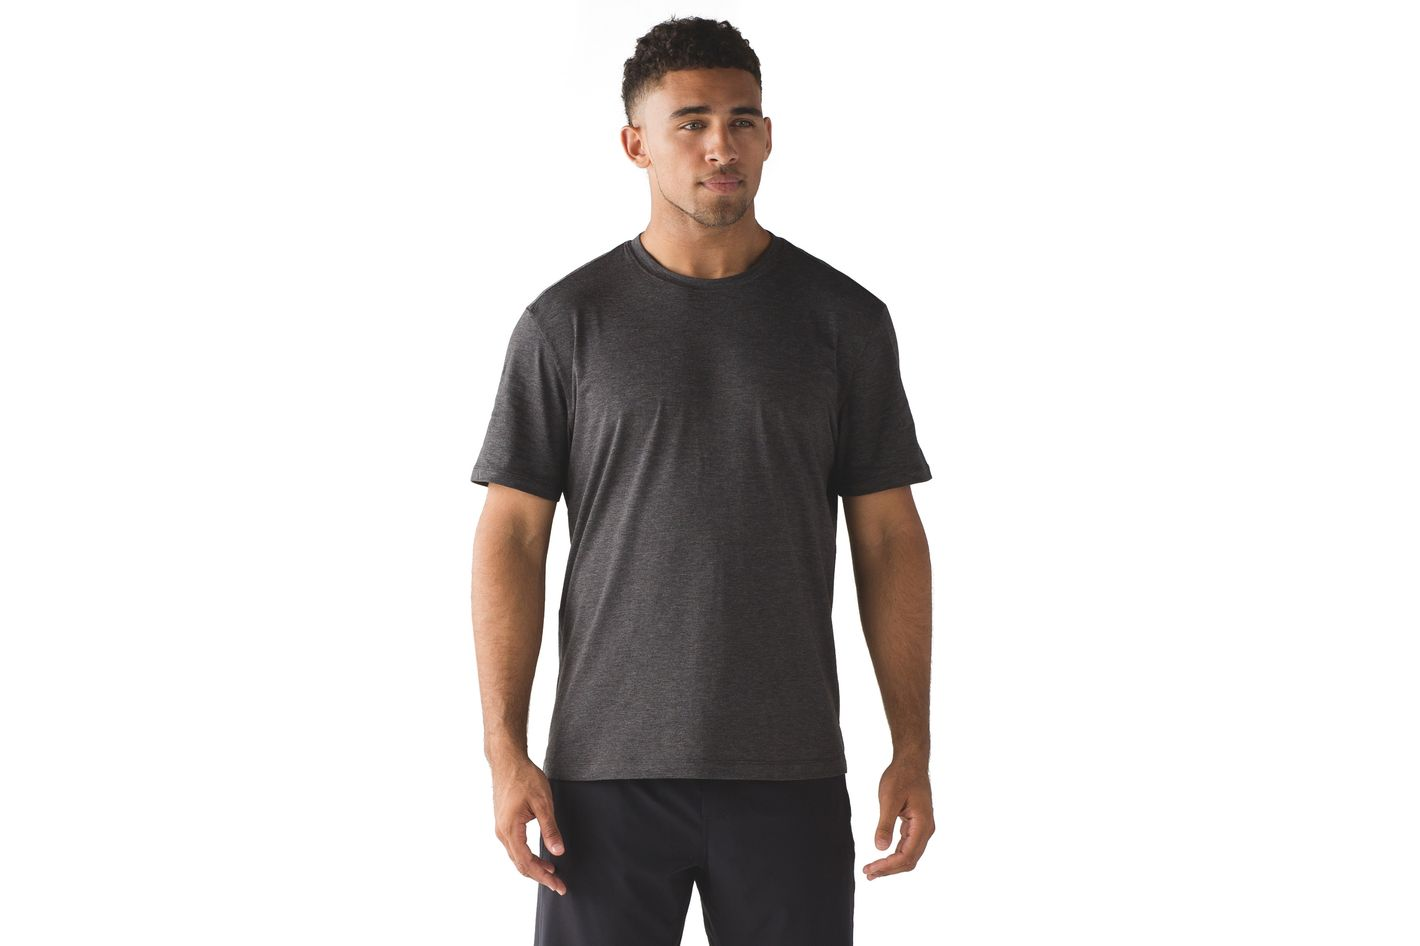 Lululemon Core Short Sleeve Crew